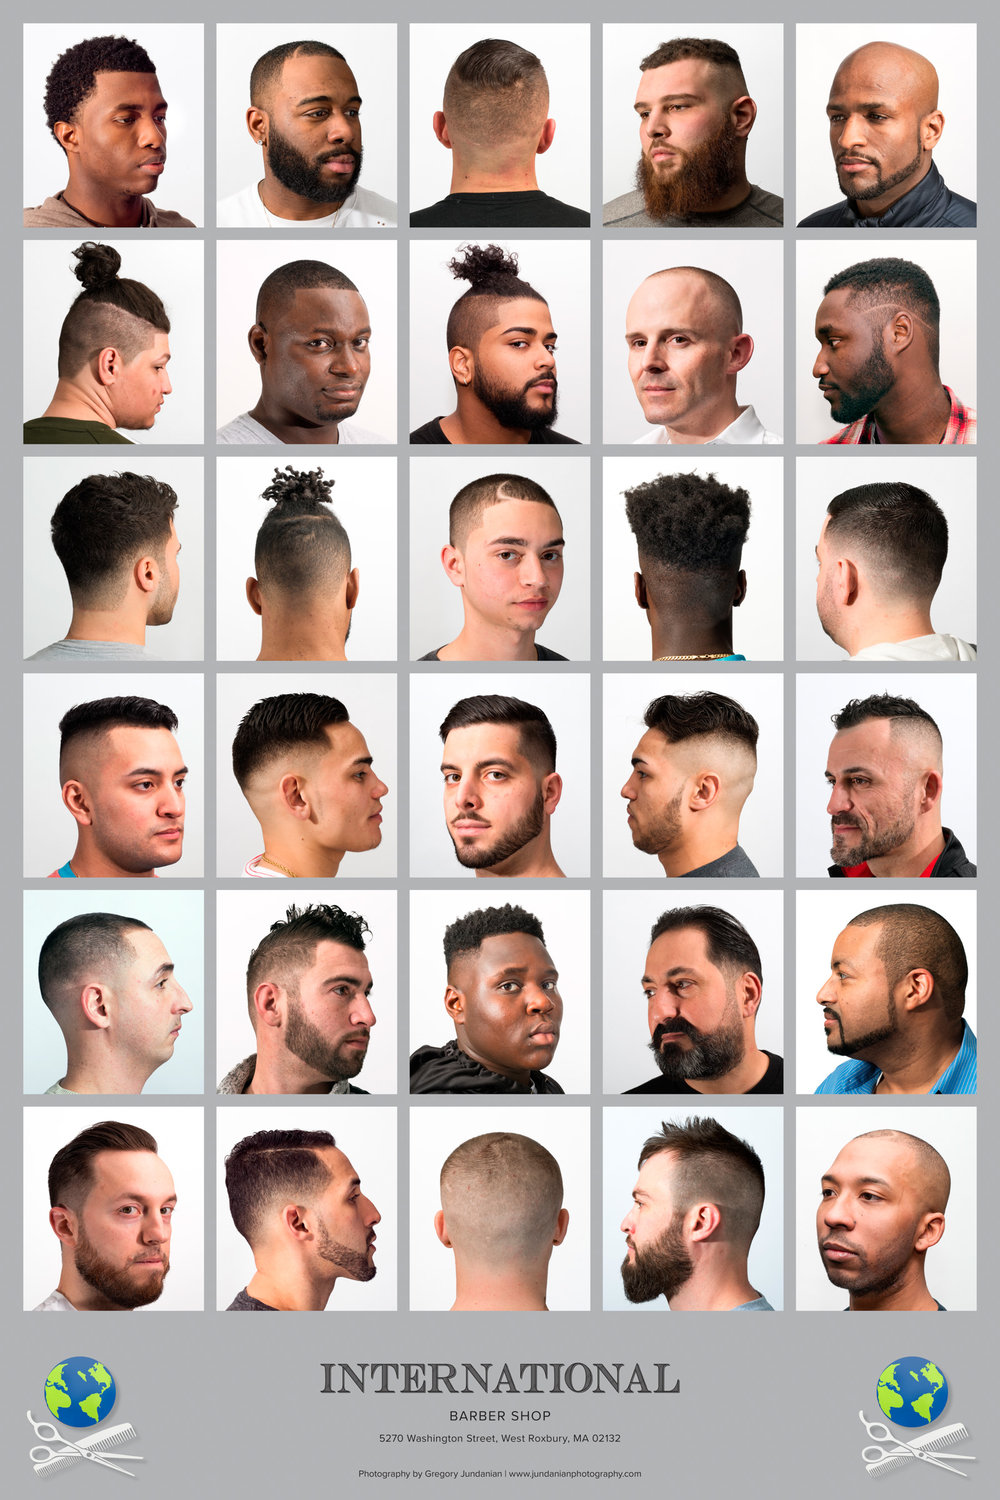 International Barbershop, West Roxbury, MA